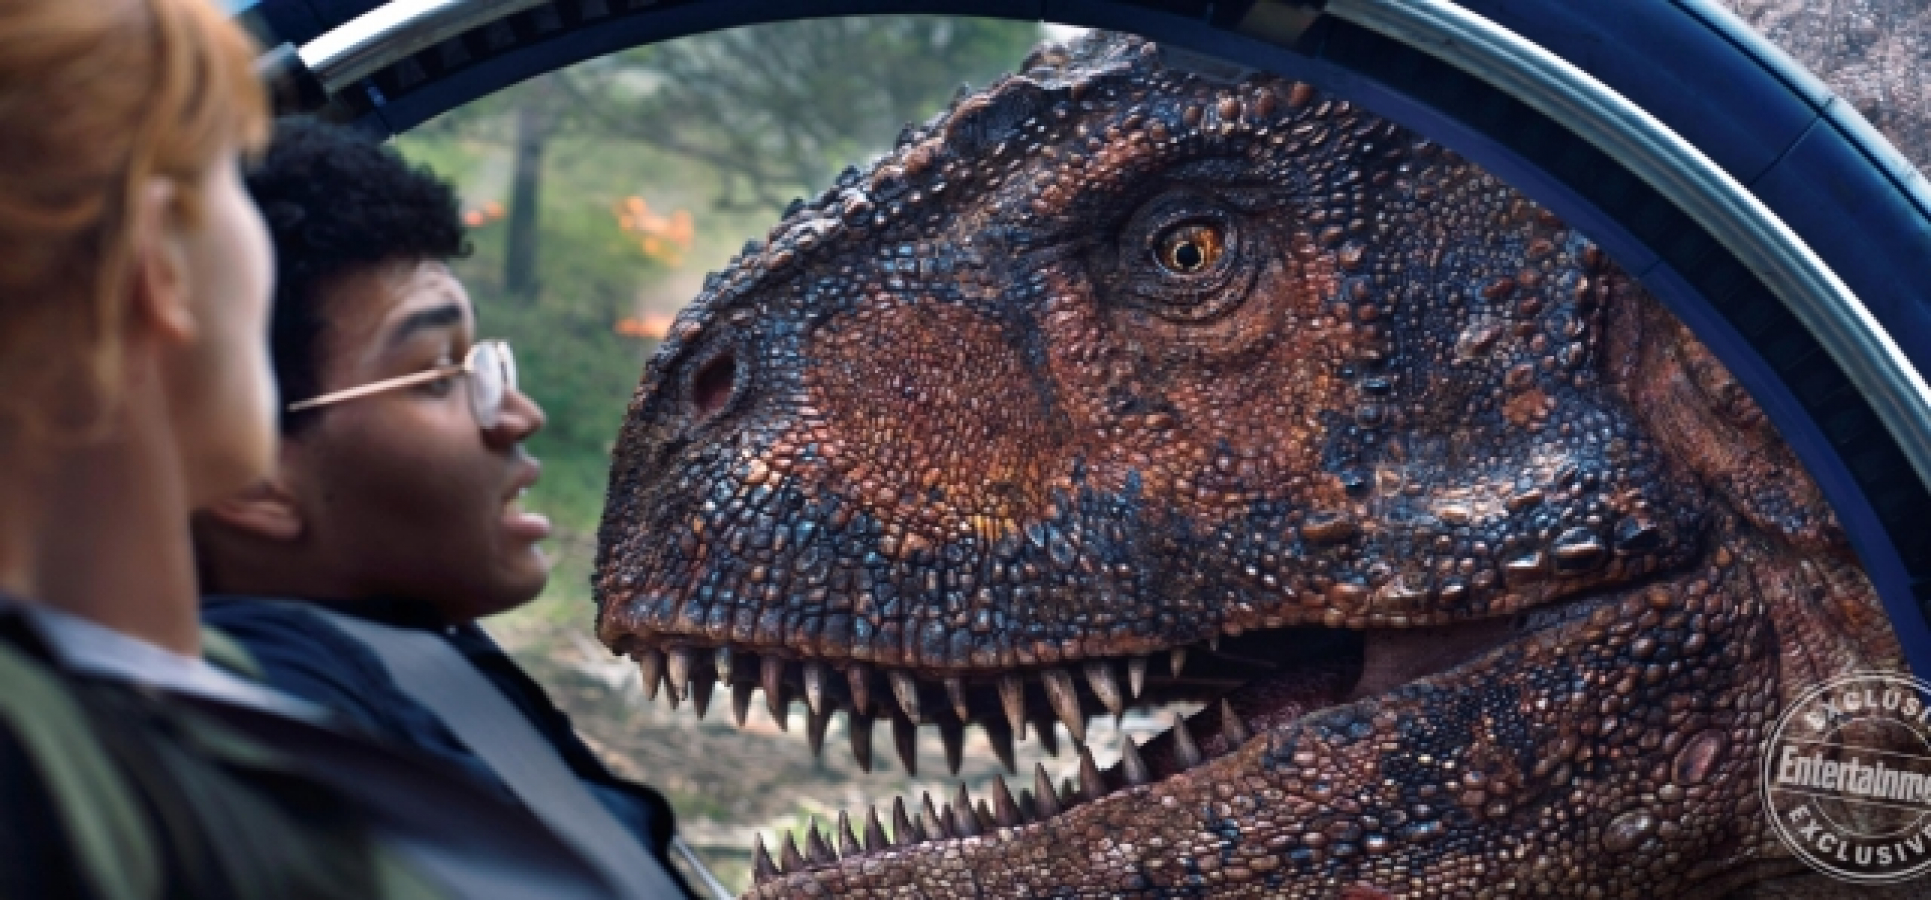 Sam Neill Might Be Teasing A Potential Jurassic World 3 Role